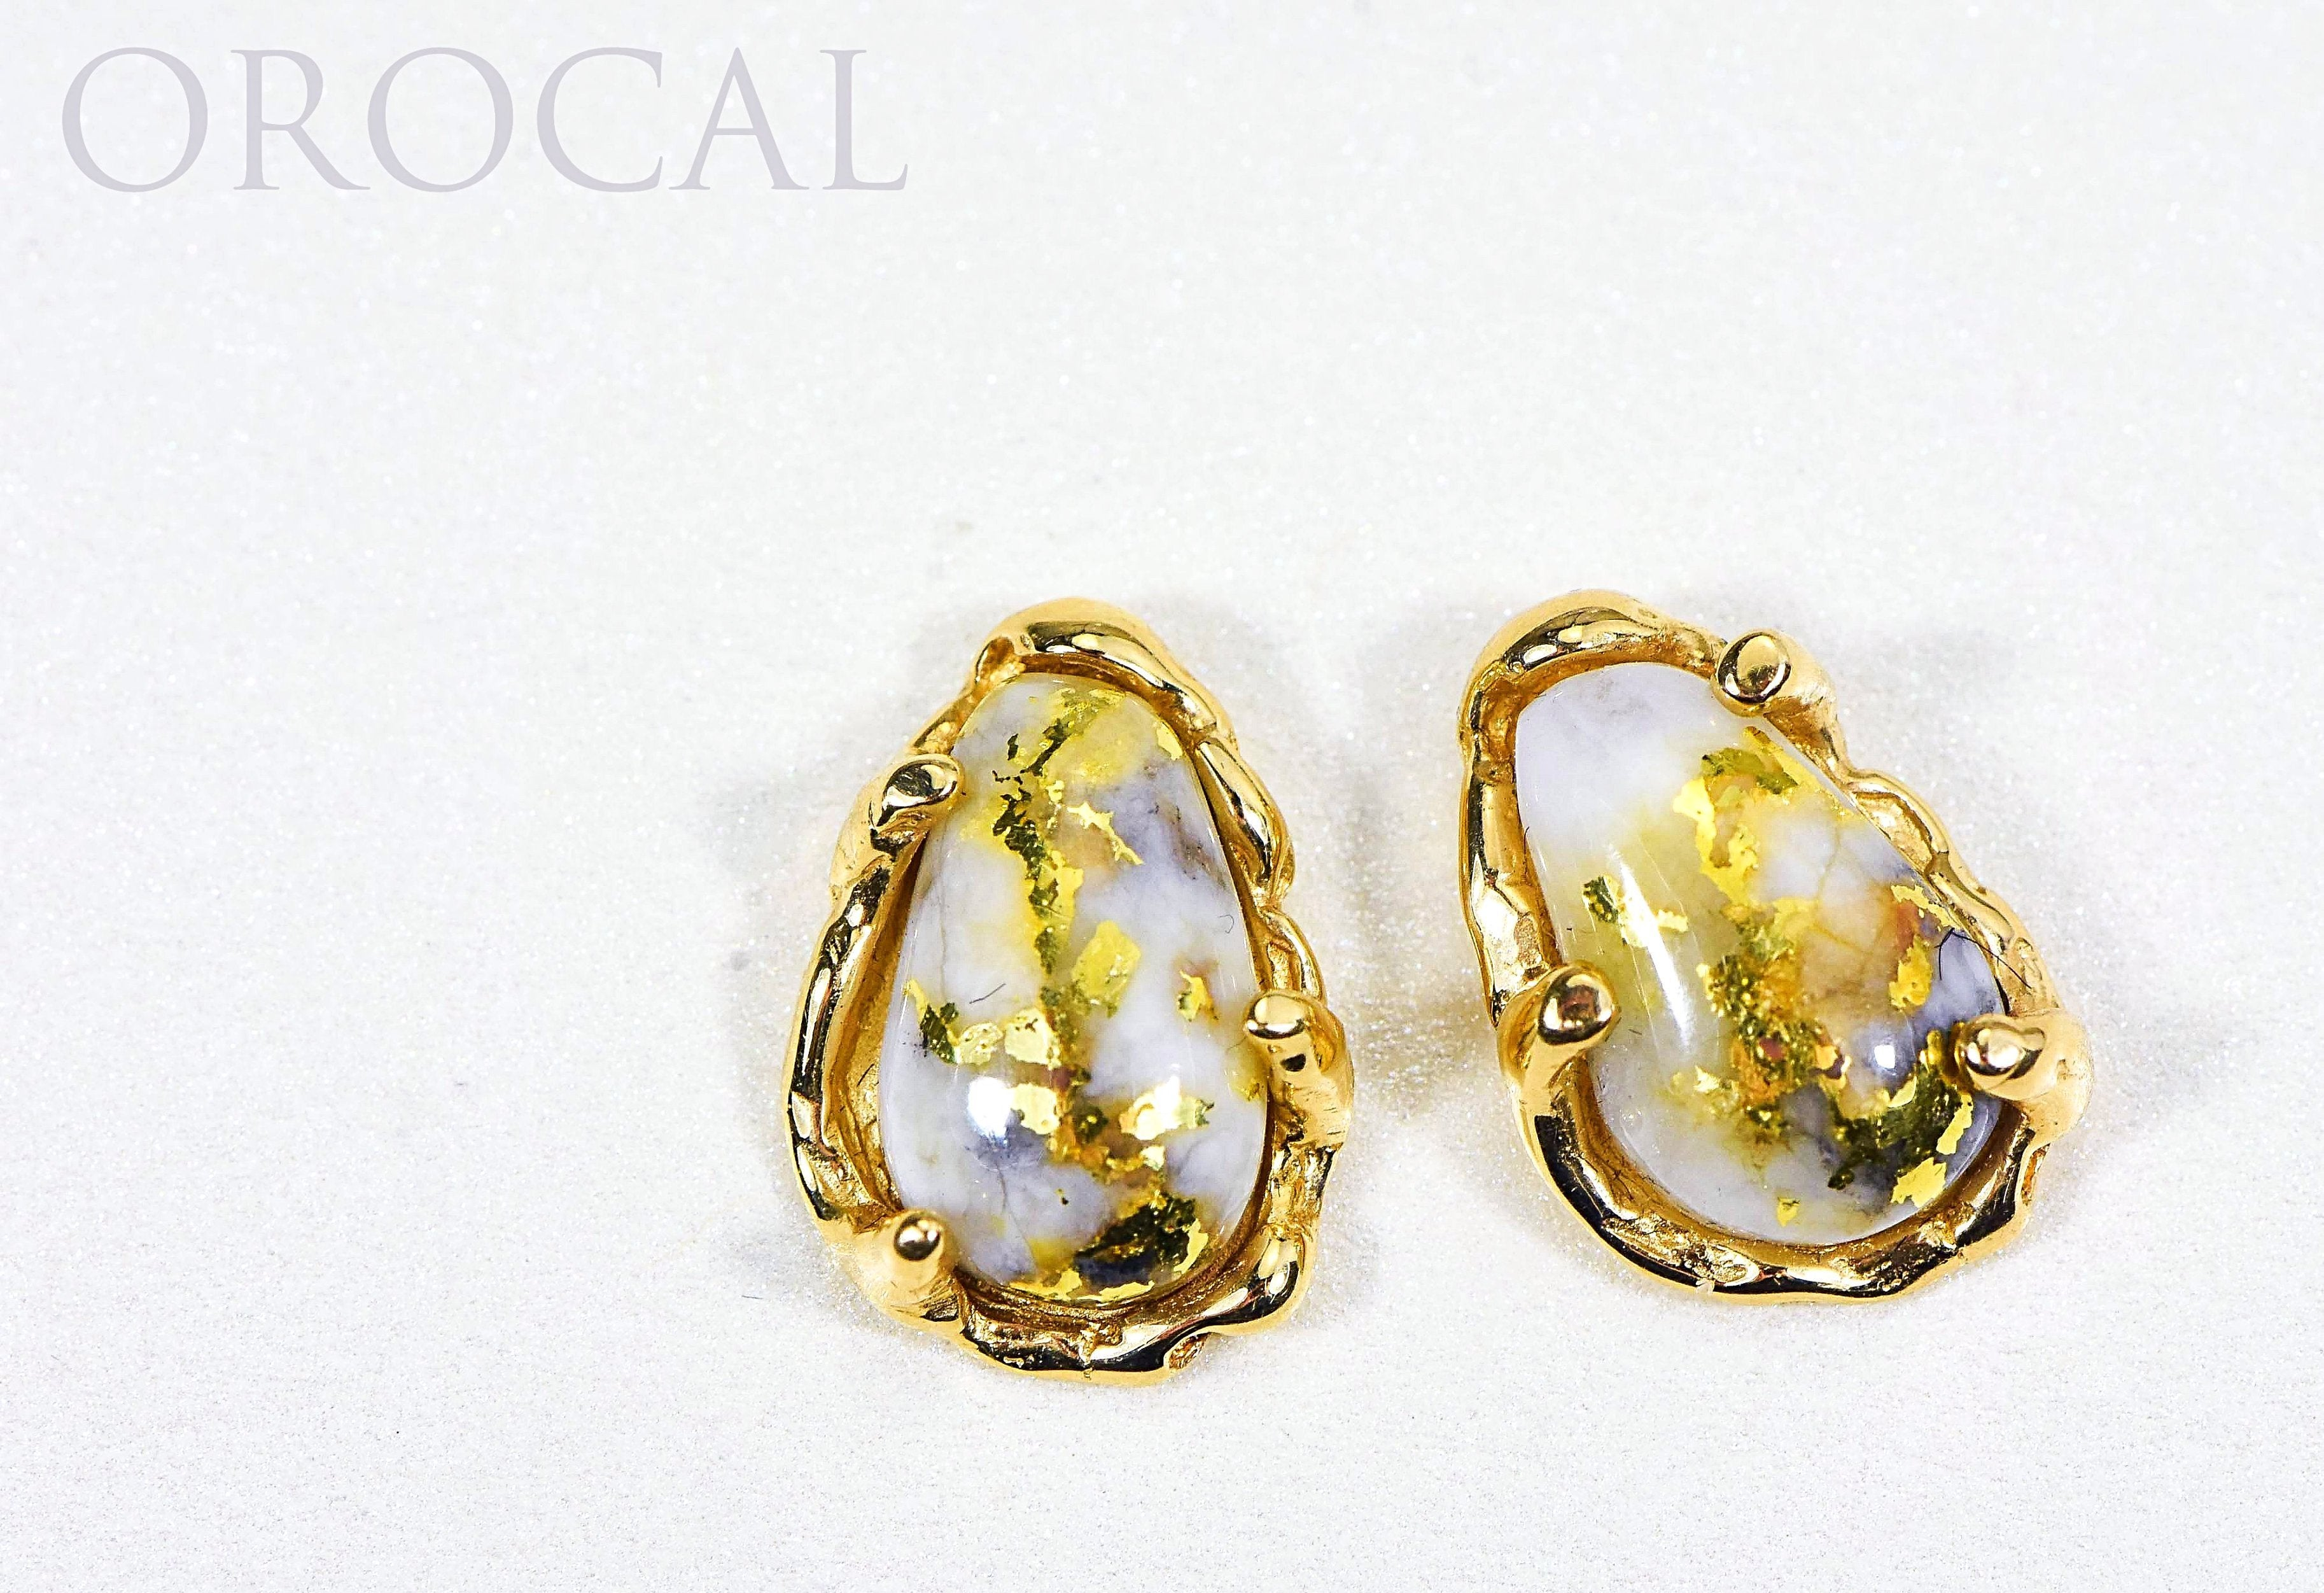 "Gold Quartz Earrings ""Orocal"" EFFQ4 Genuine Hand Crafted Jewelry - 14K Gold Casting"